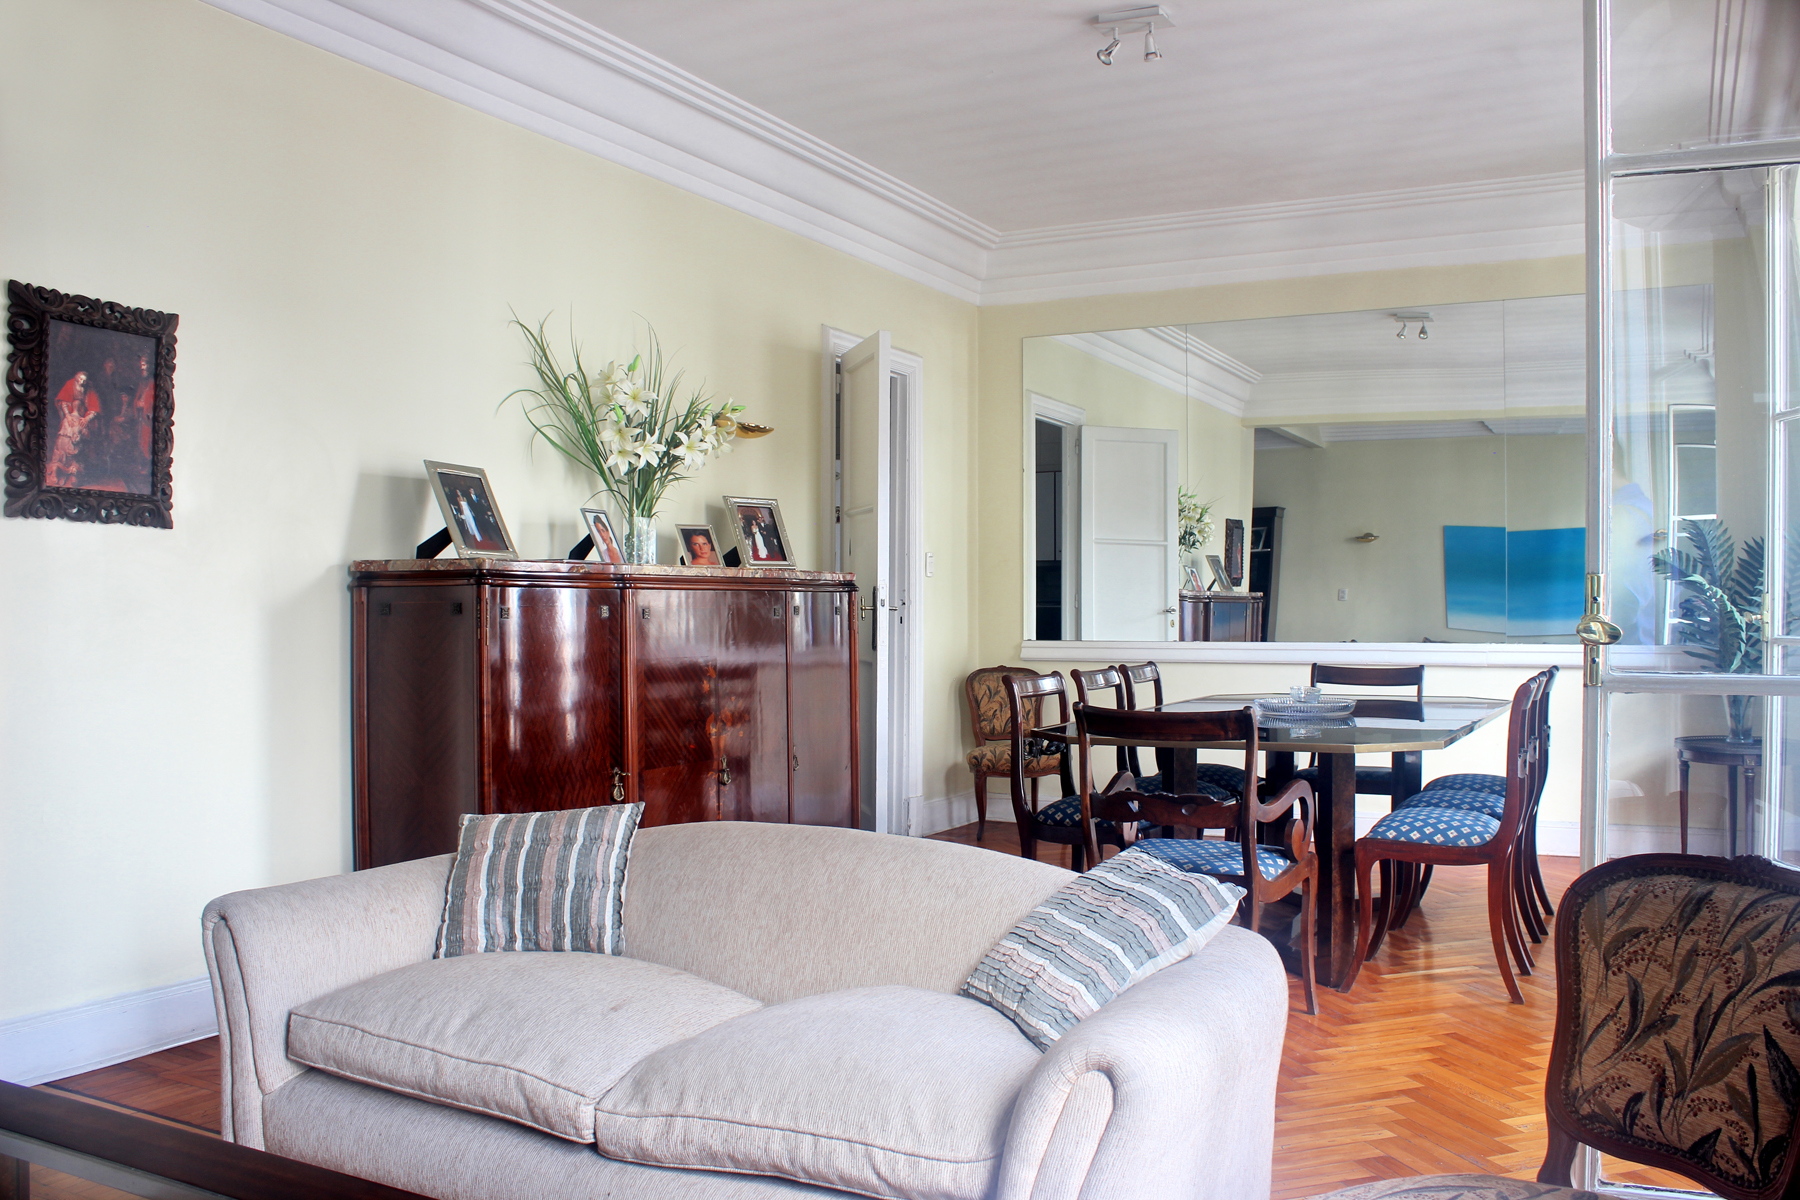 Duplex Homes for Sale at Flawless duplex Guido 1500 Buenos Aires, Buenos Aires C1016AAA Argentina